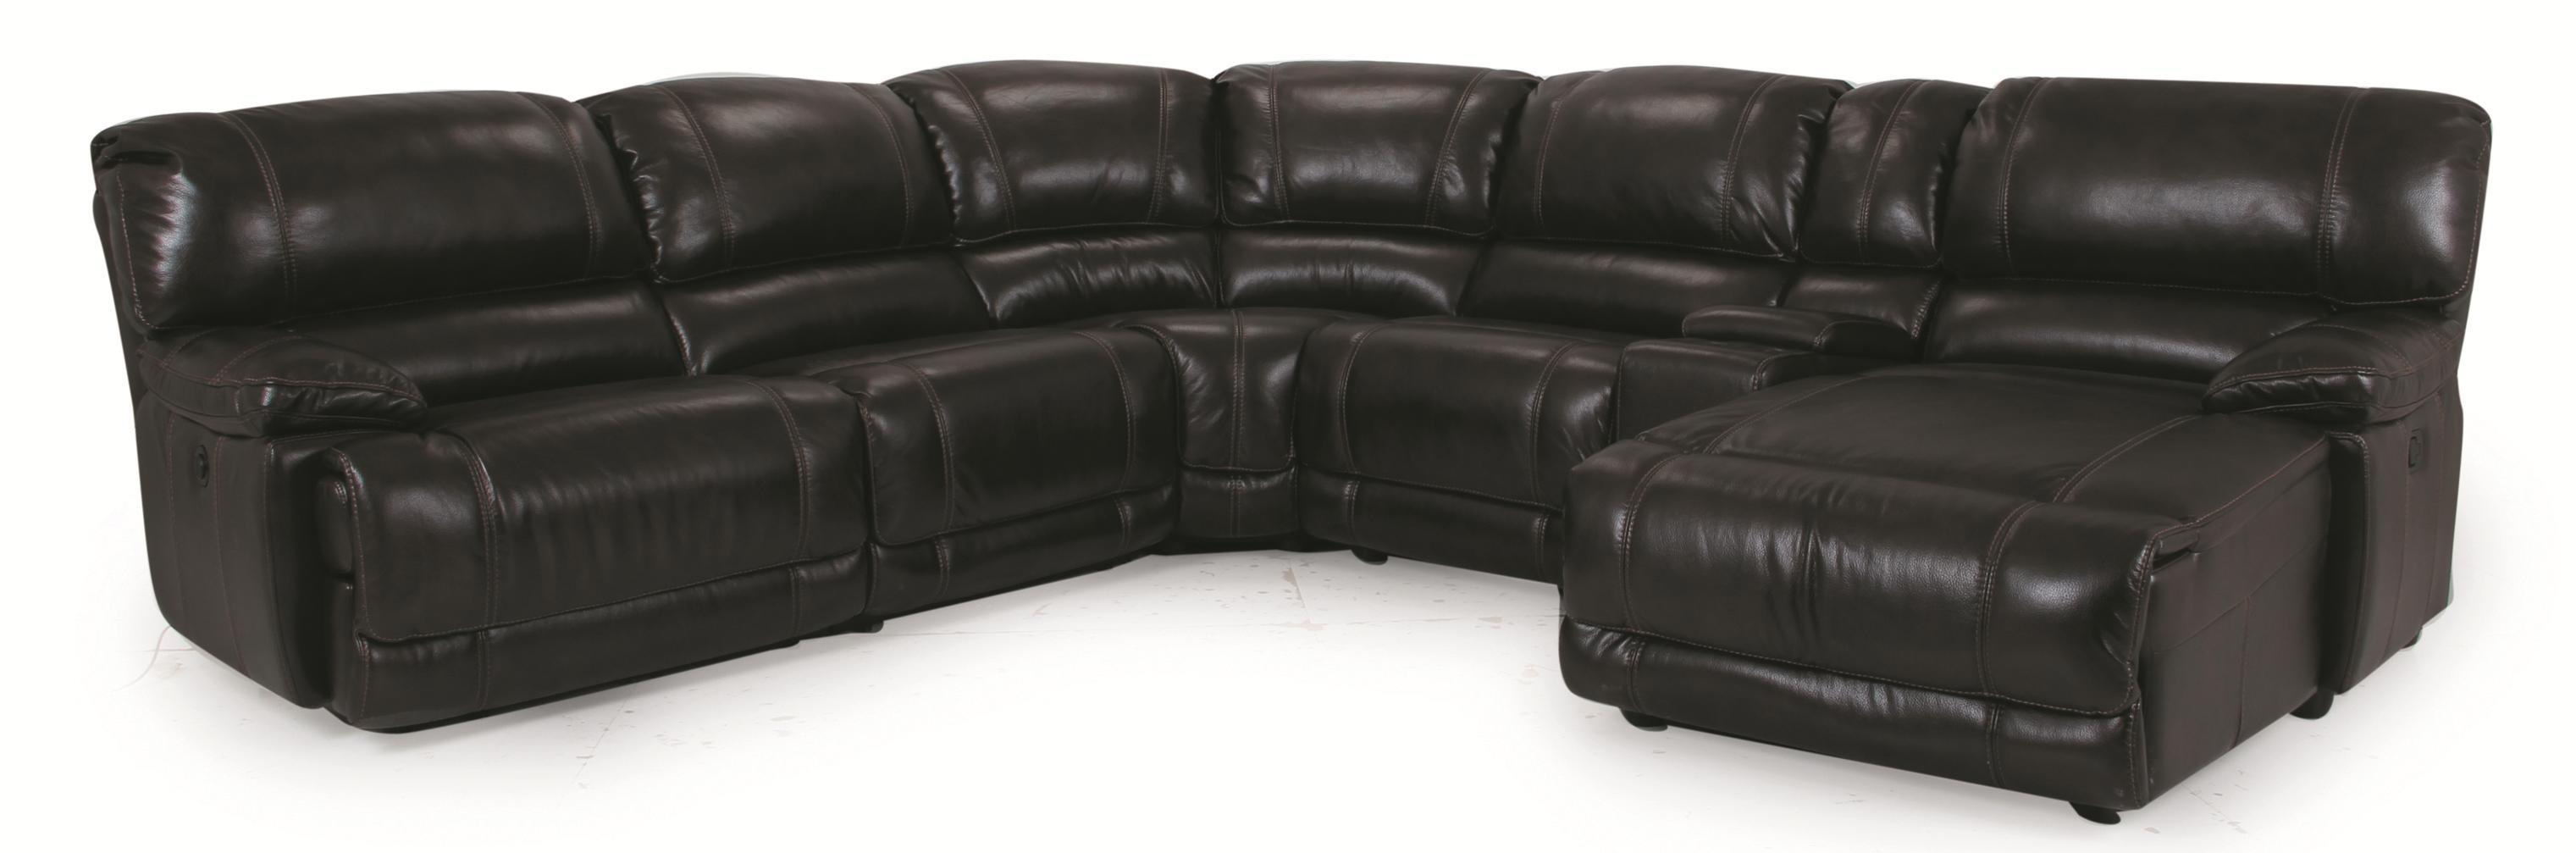 Cheers Sofa X8698M Spence 6 Piece Right Facing Chaise Sectional - Item Number: CHEE-GRP-SPENCE-6PC-SECTIONAL